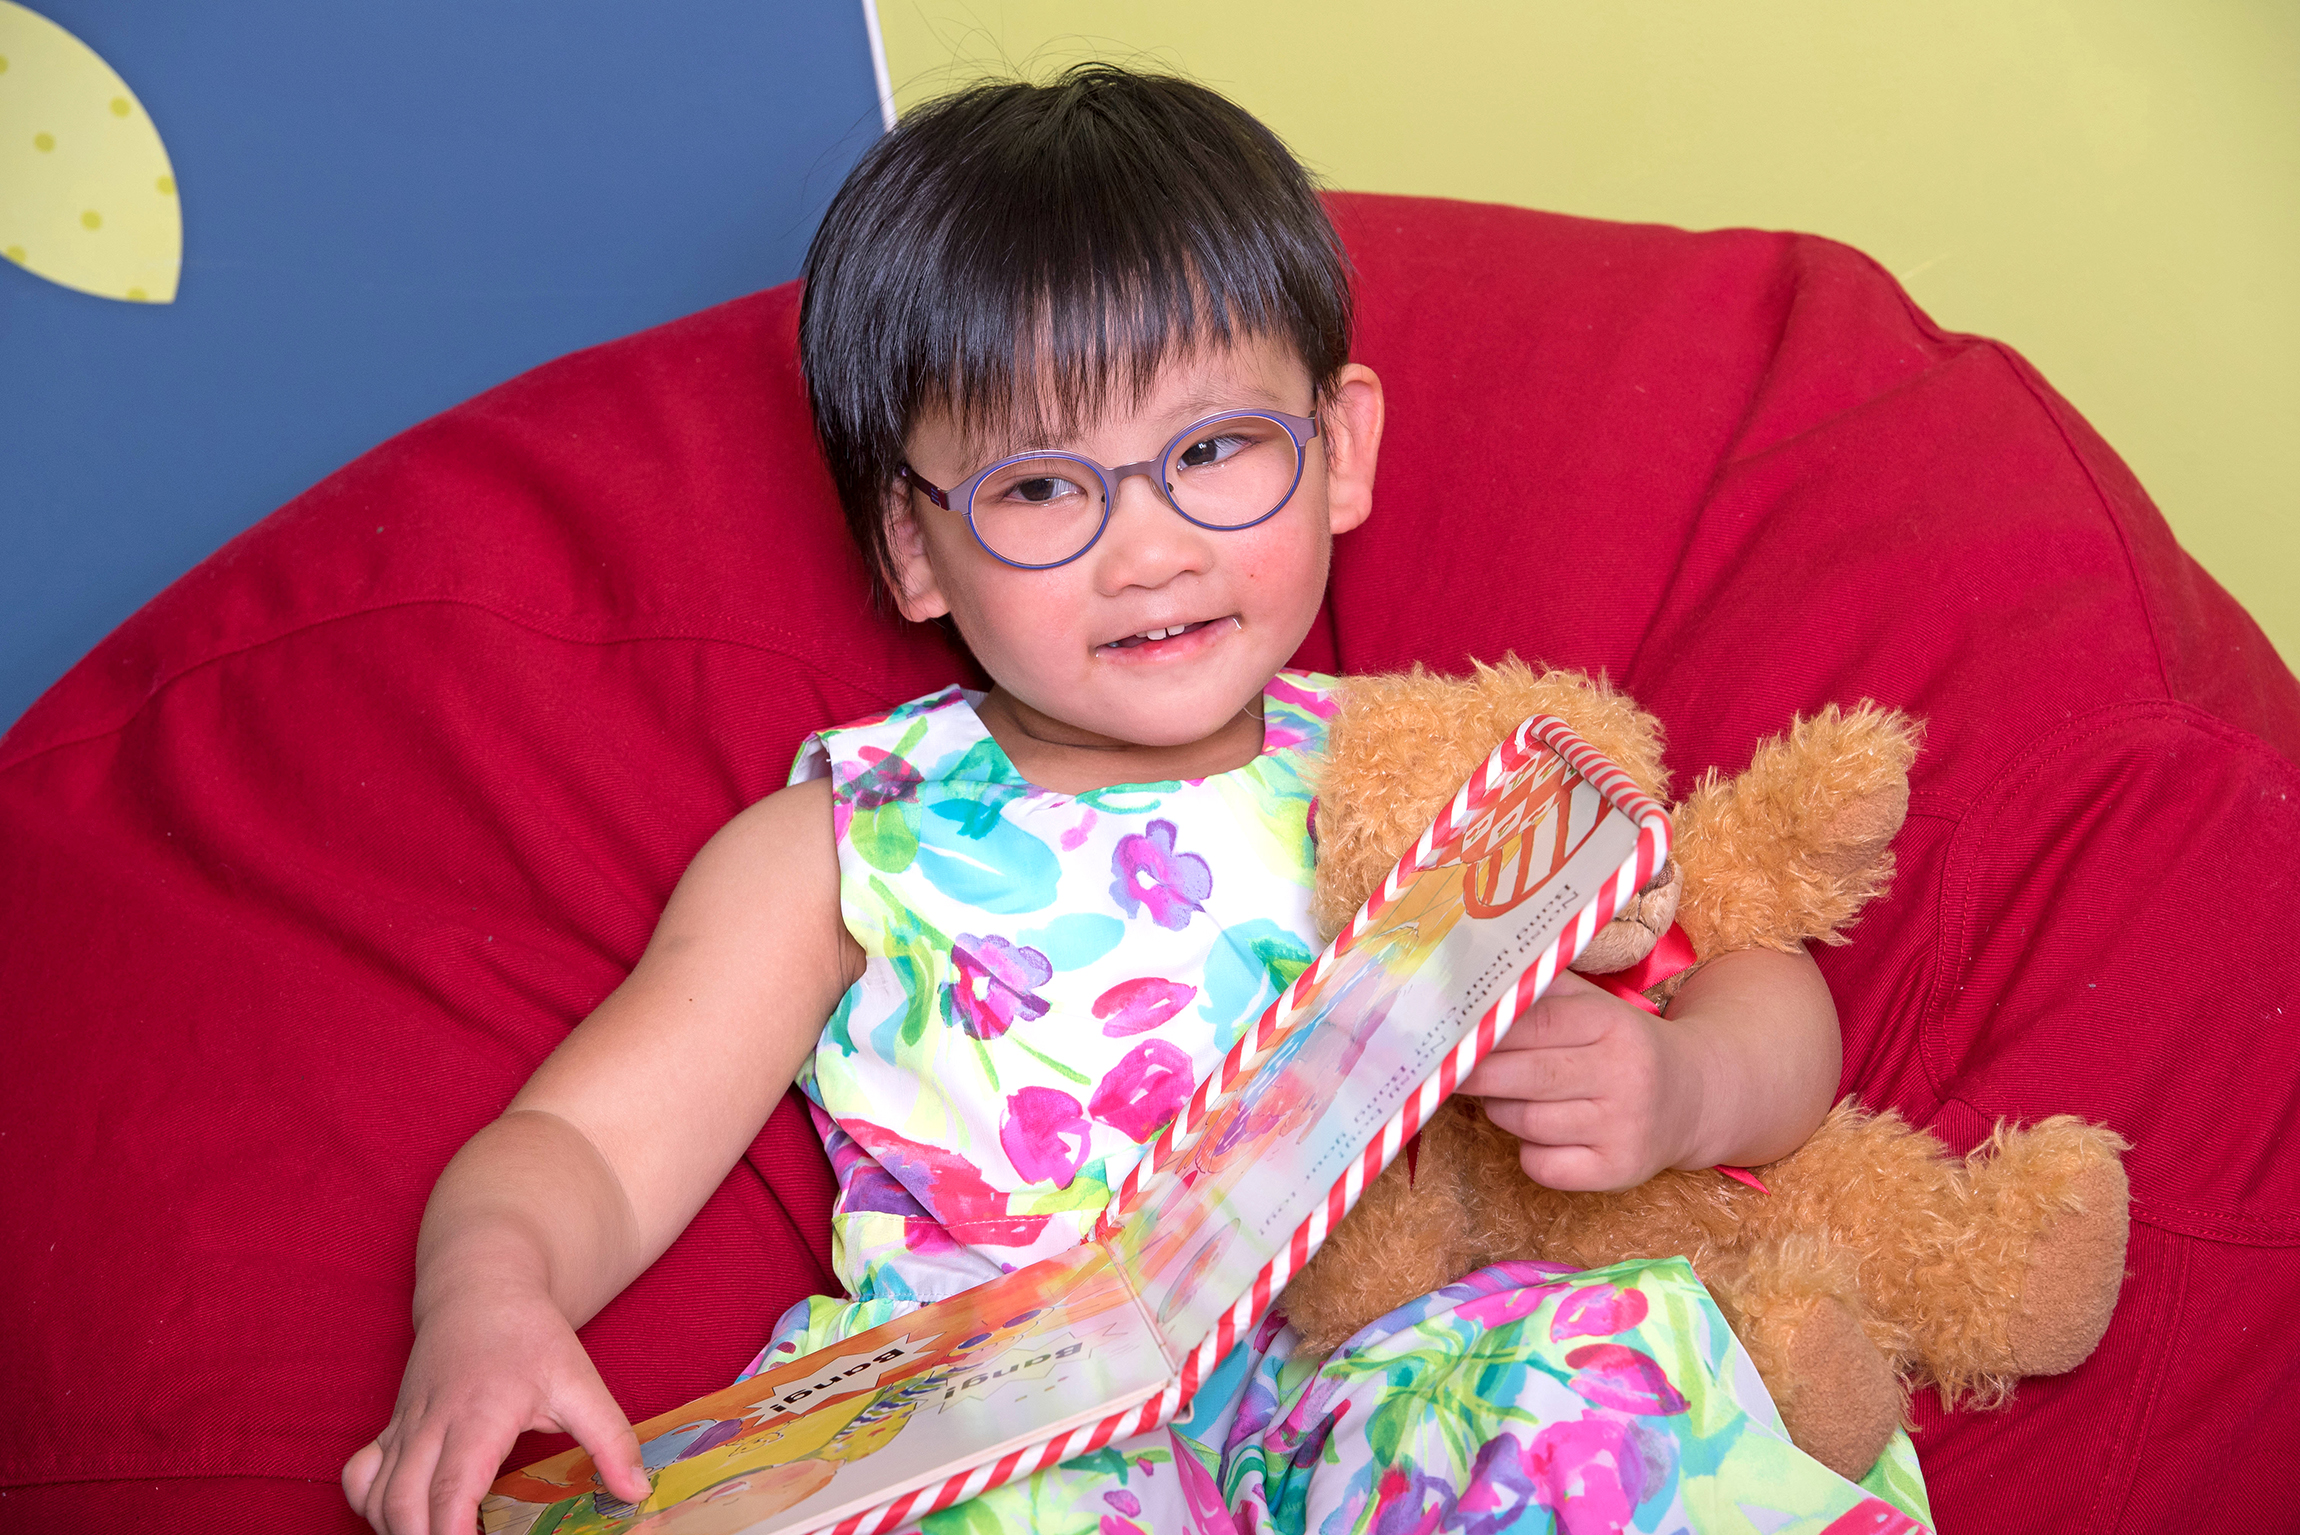 4 year old Burnaby Resident Celebrated as Hero of Ability